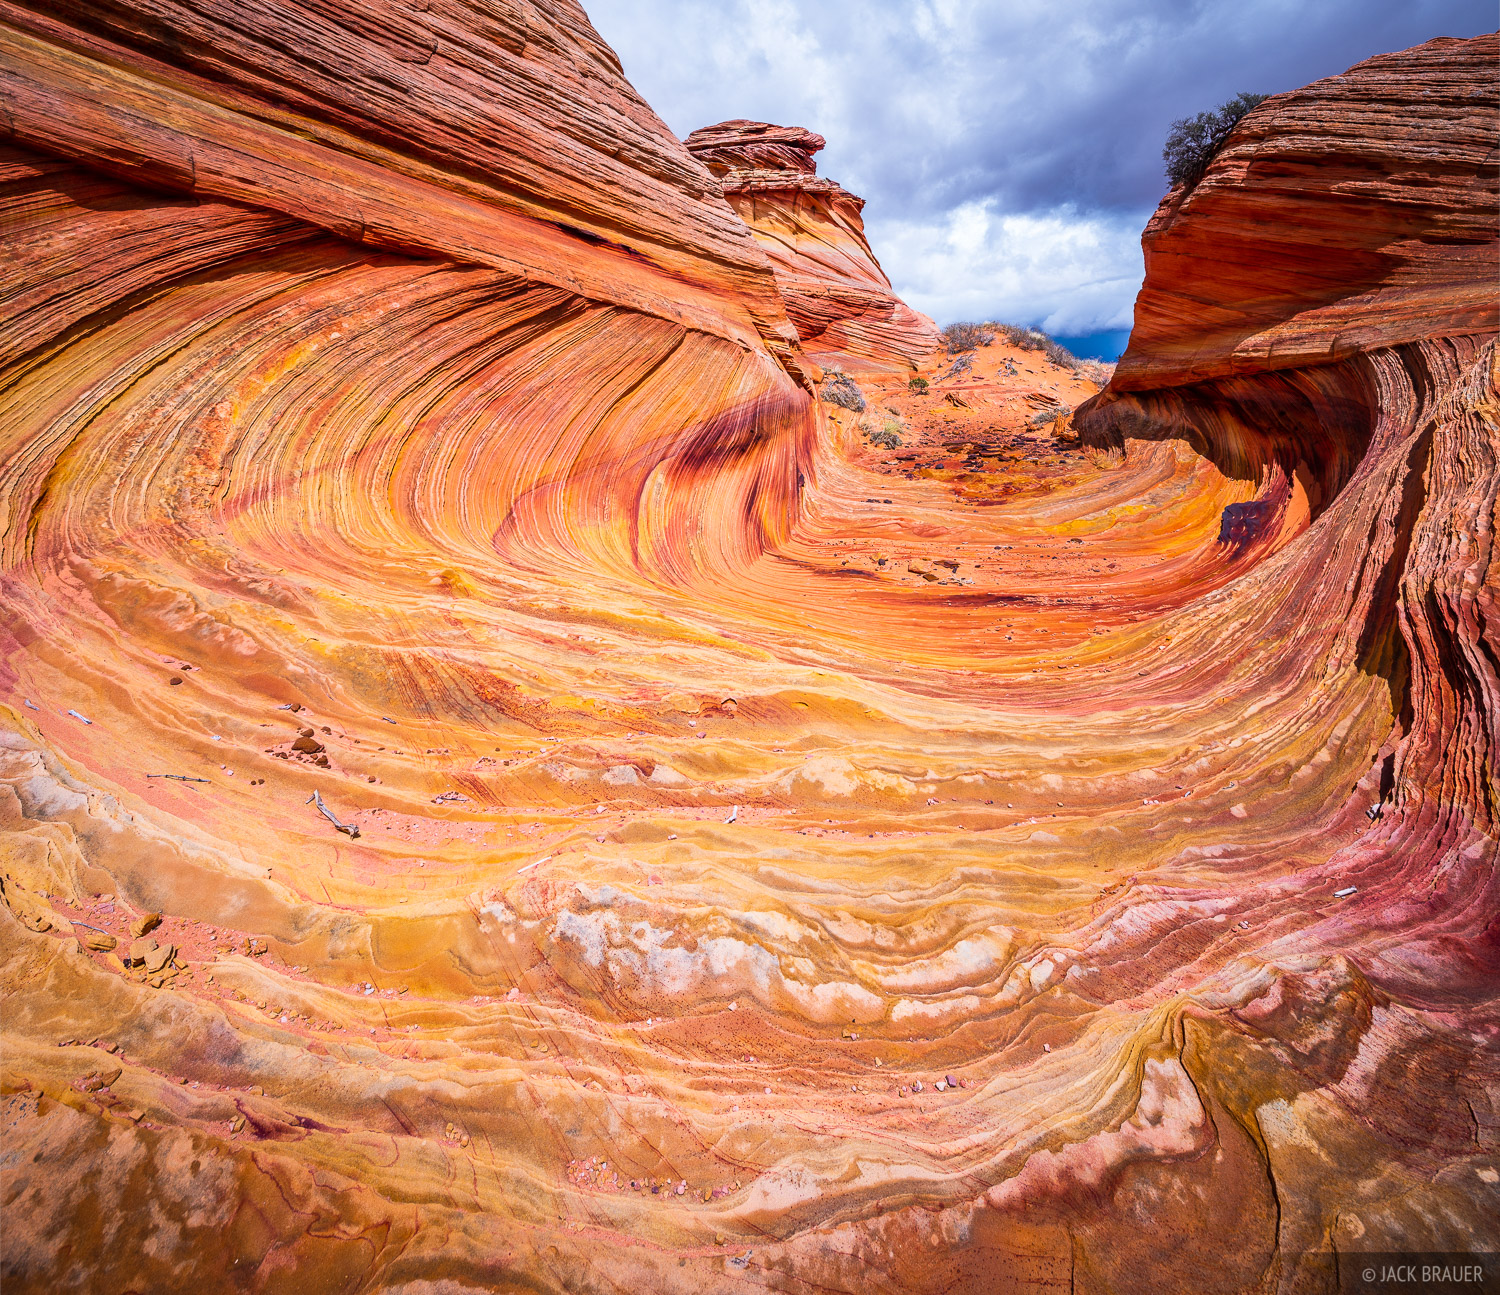 Arizona, Coyote Buttes South, Paria Canyon-Vermilion Cliffs Wilderness, Utah, Vermilion Cliffs National Monument, photo